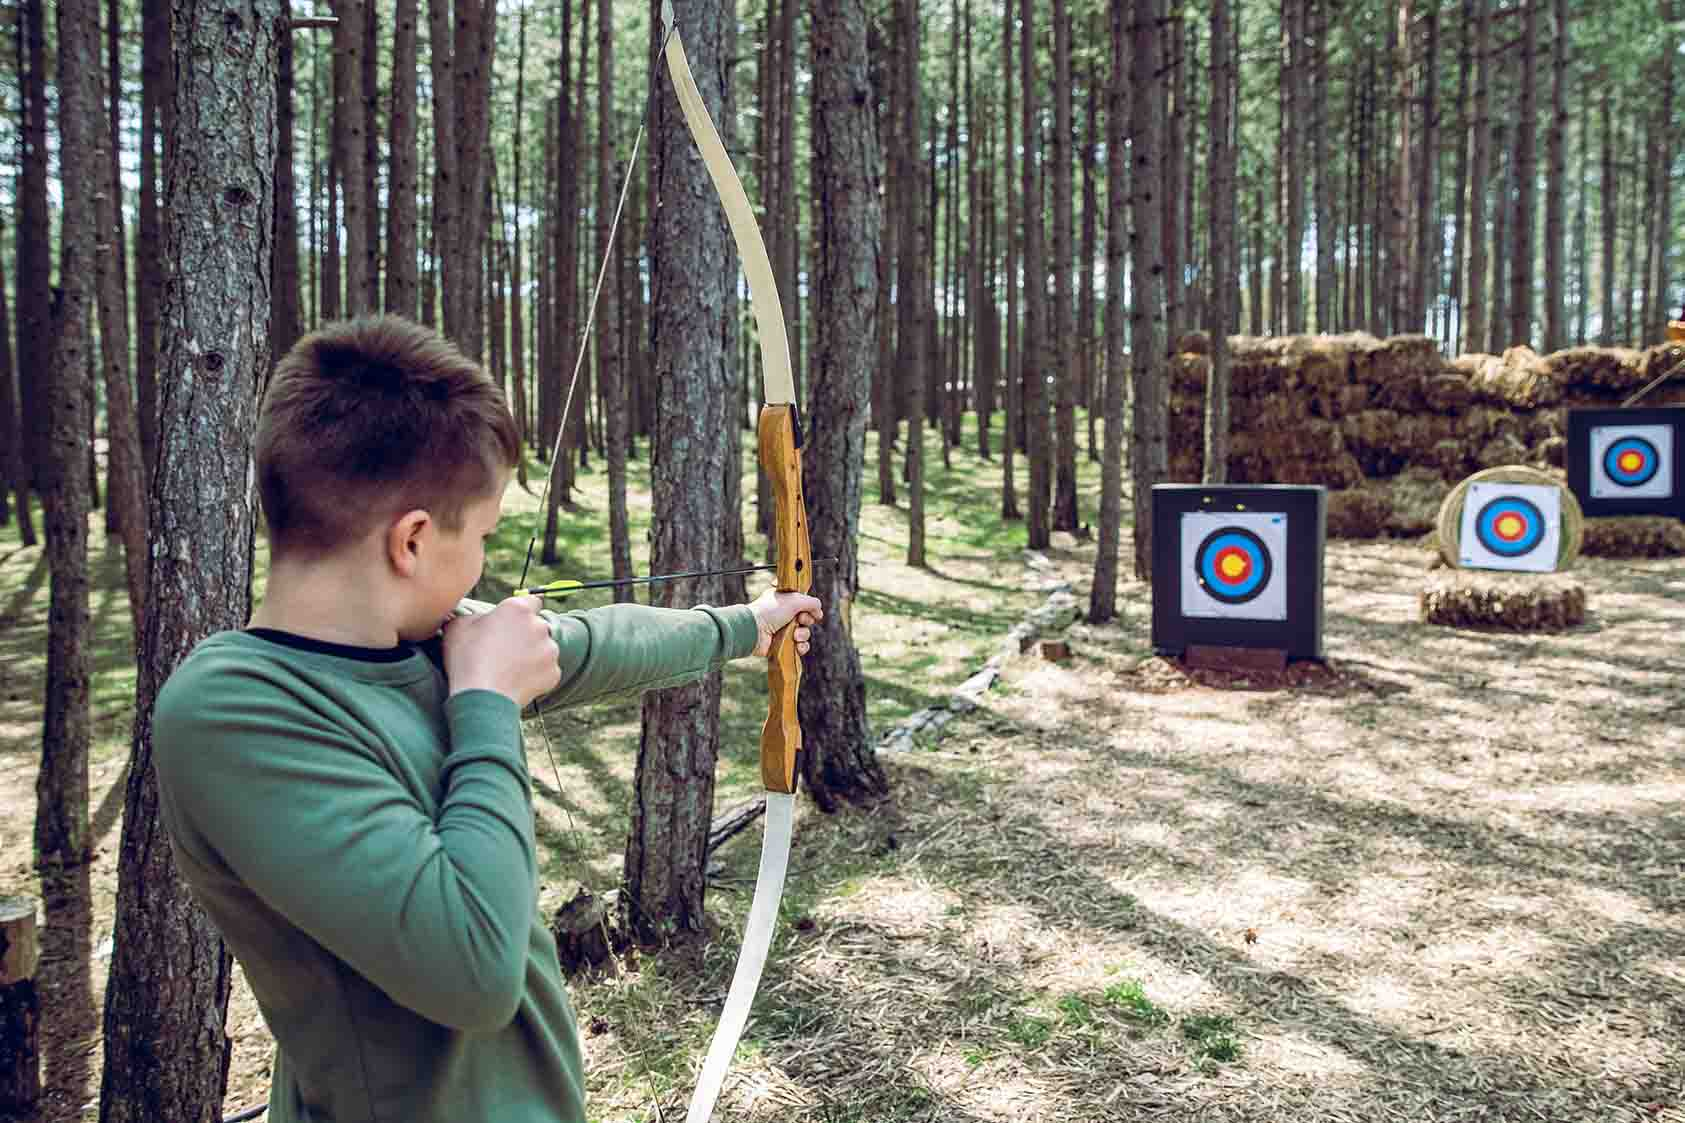 teen boy learning archery at an outdoor park, aiming at a target